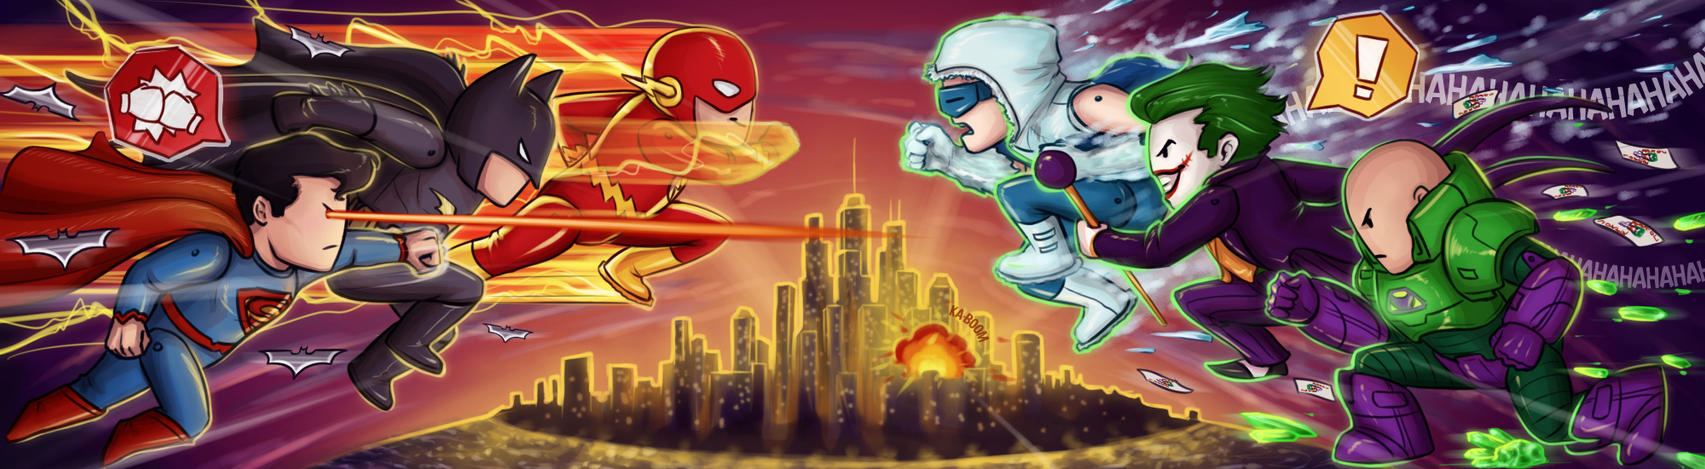 Scribblenauts Unmasked by ribkaDory